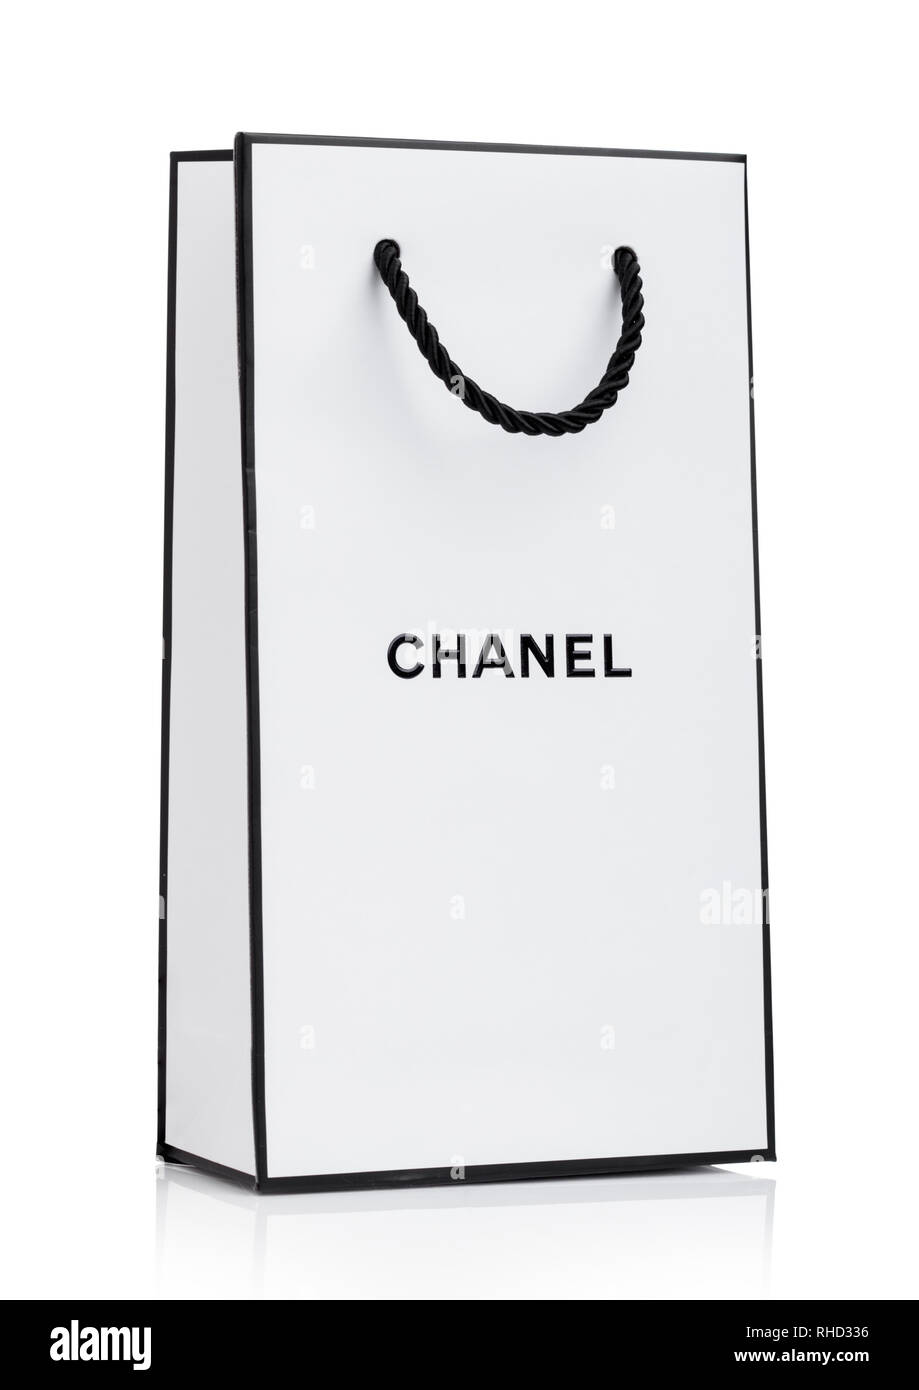 839b6570fea3 LONDON, UK - JANUARY 15, 2019: Paper Chanel shopping bag, white with